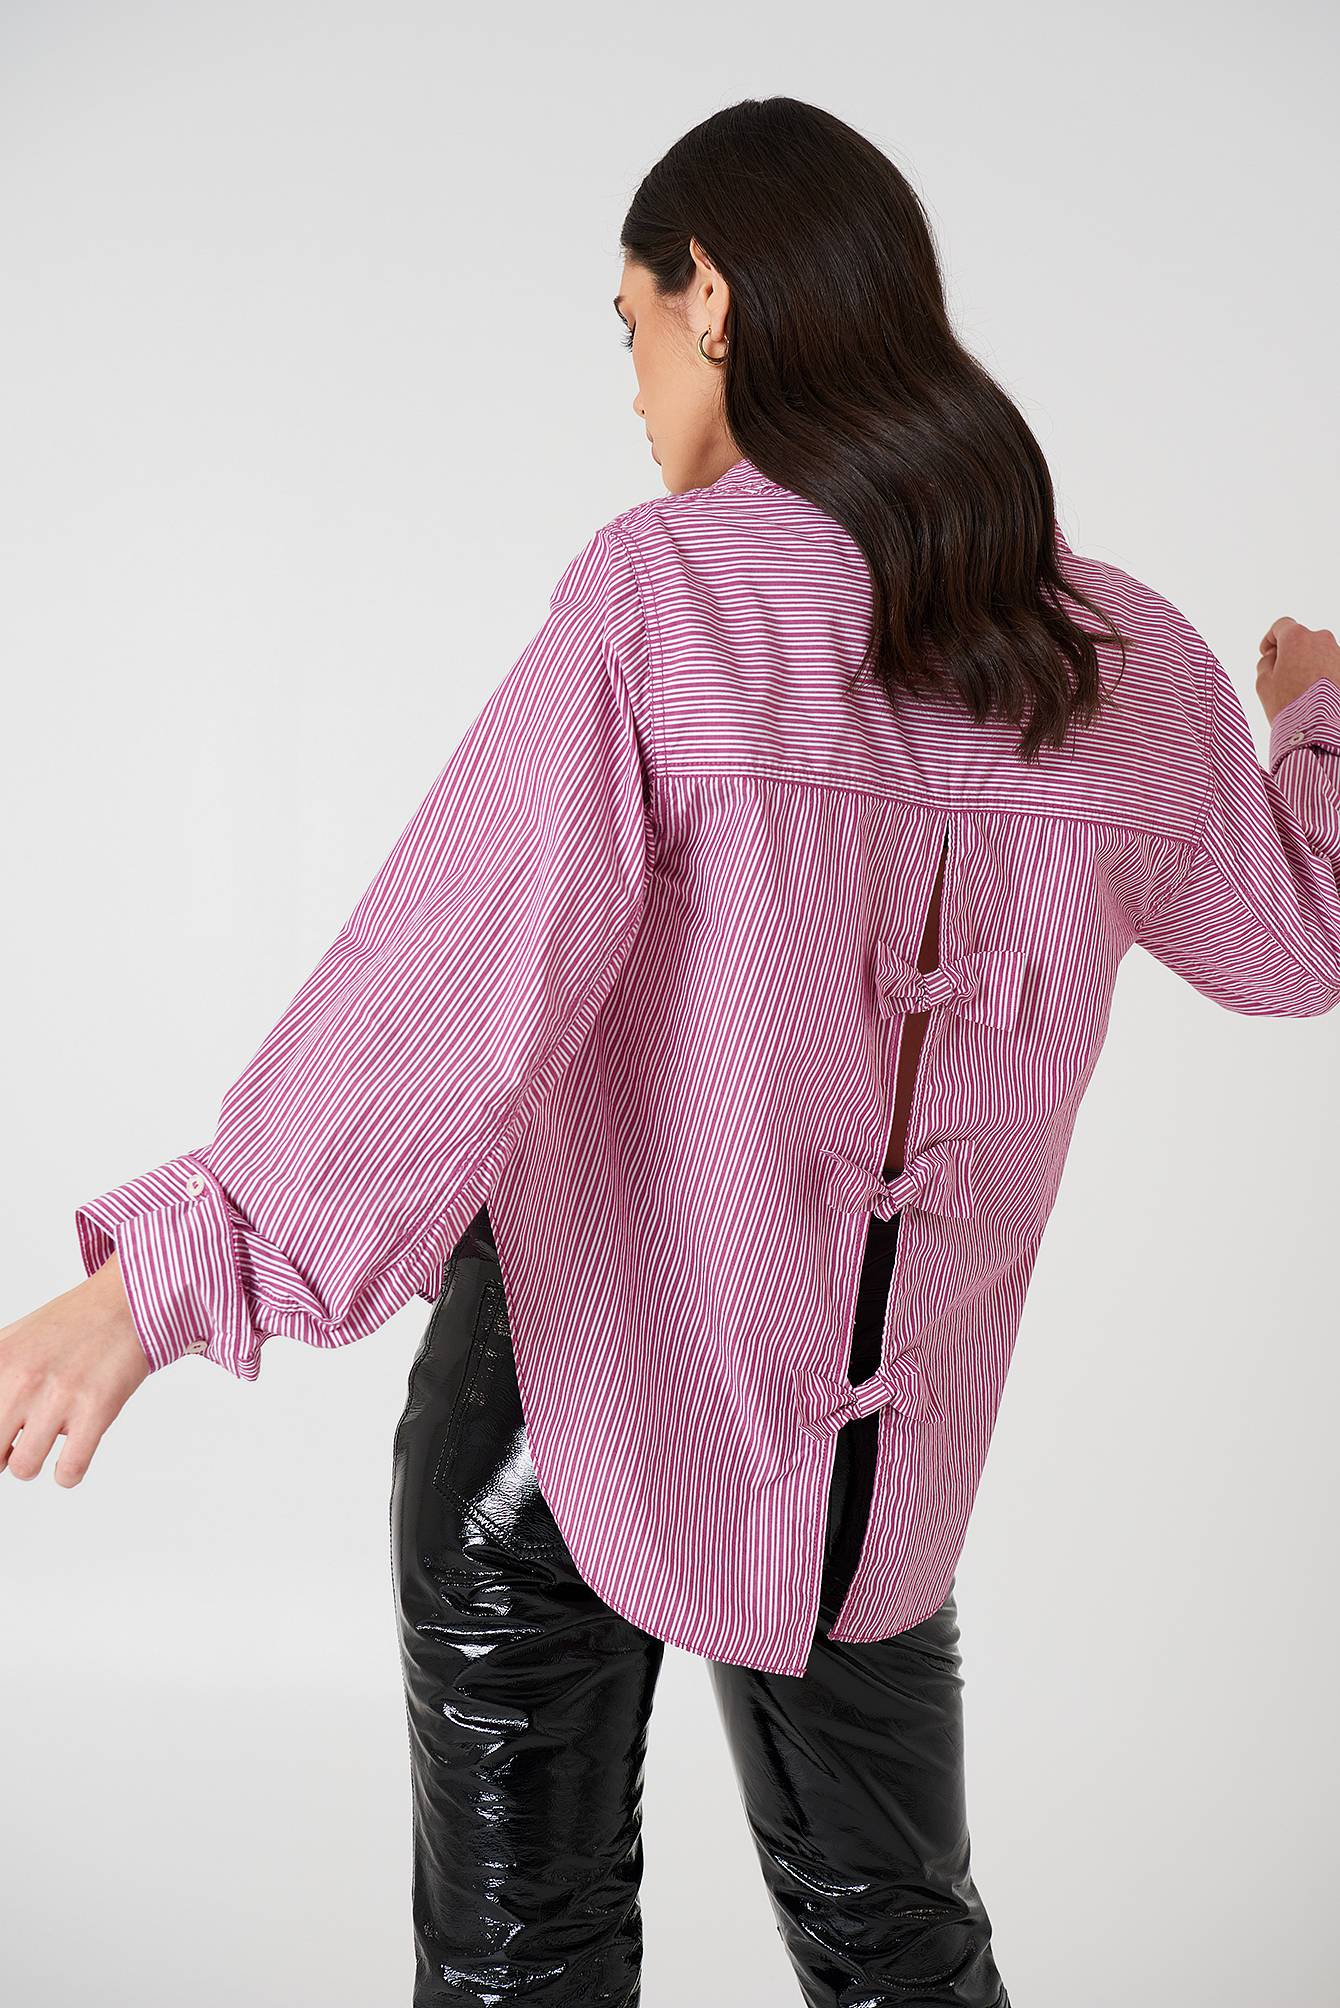 Free People Tie It In A Bow Shirt - Purple,Multicolor